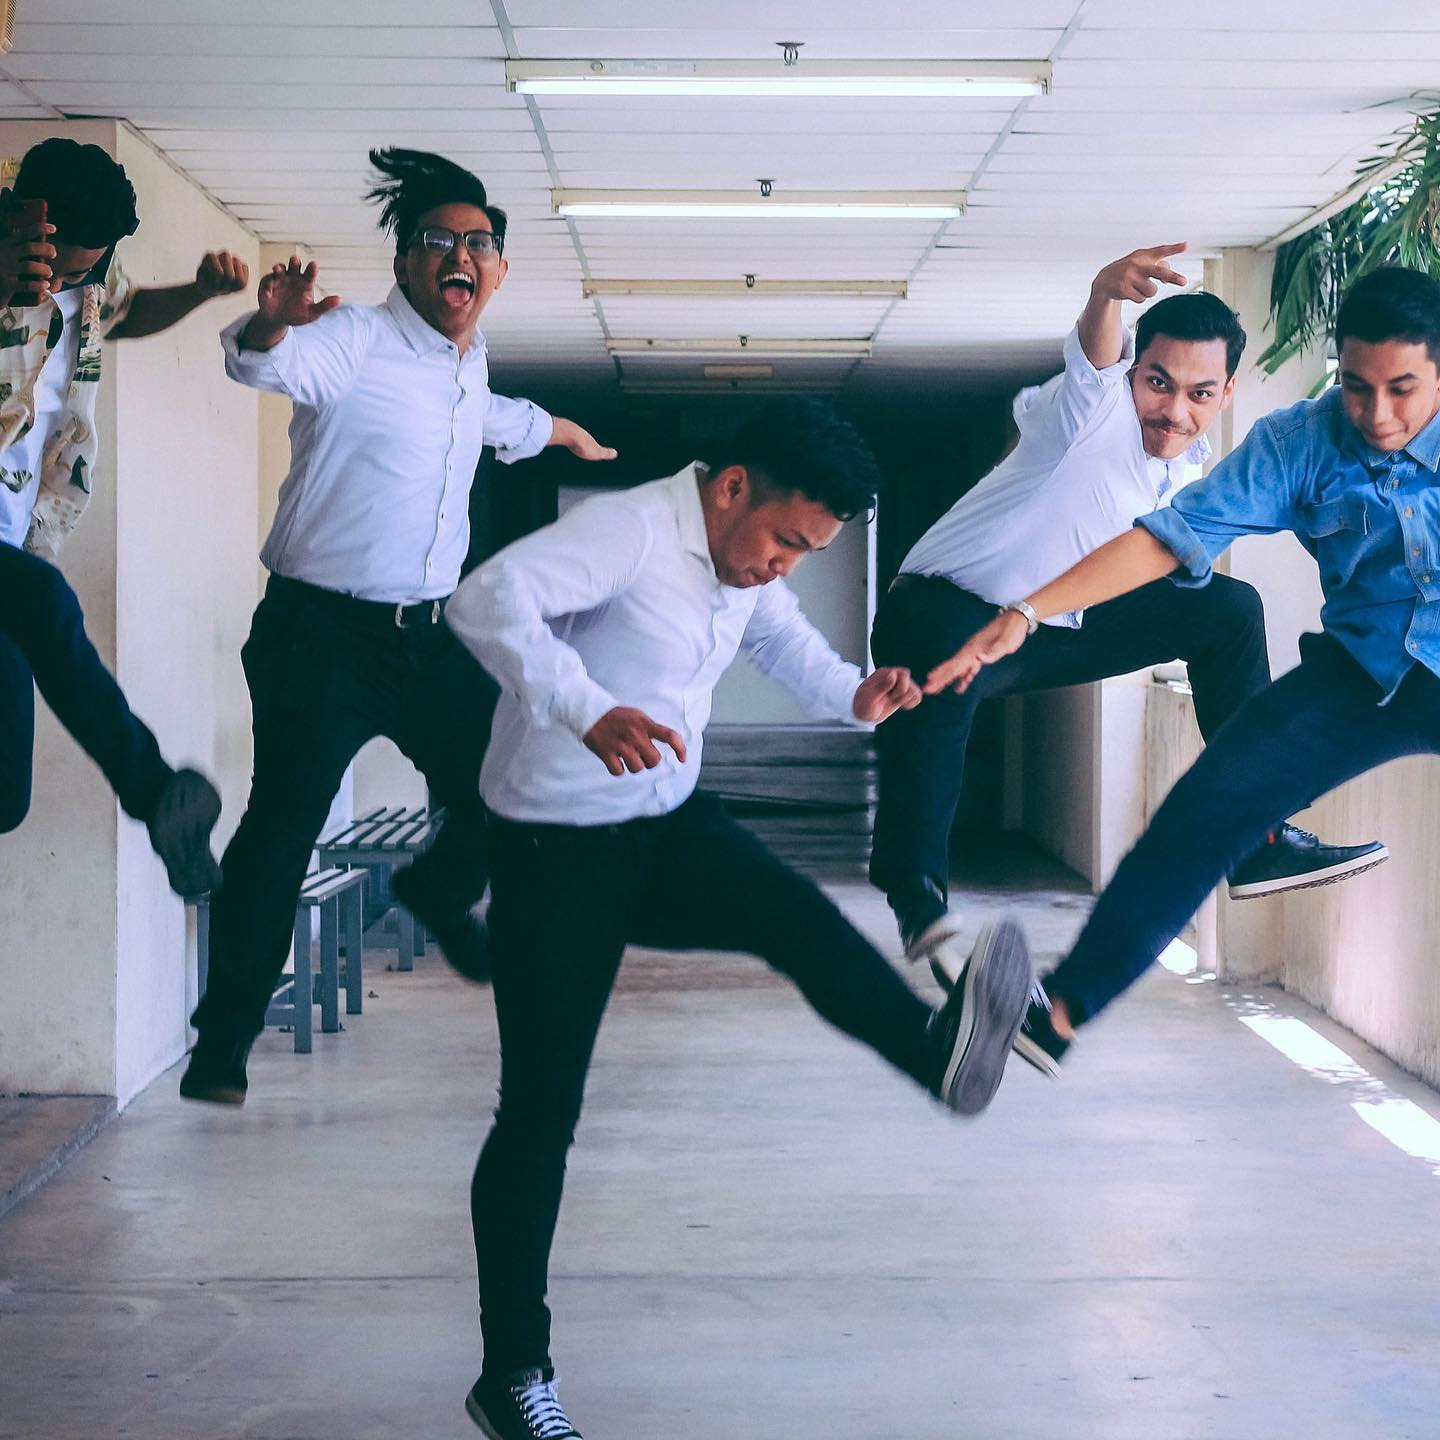 Happy students leaping in the air